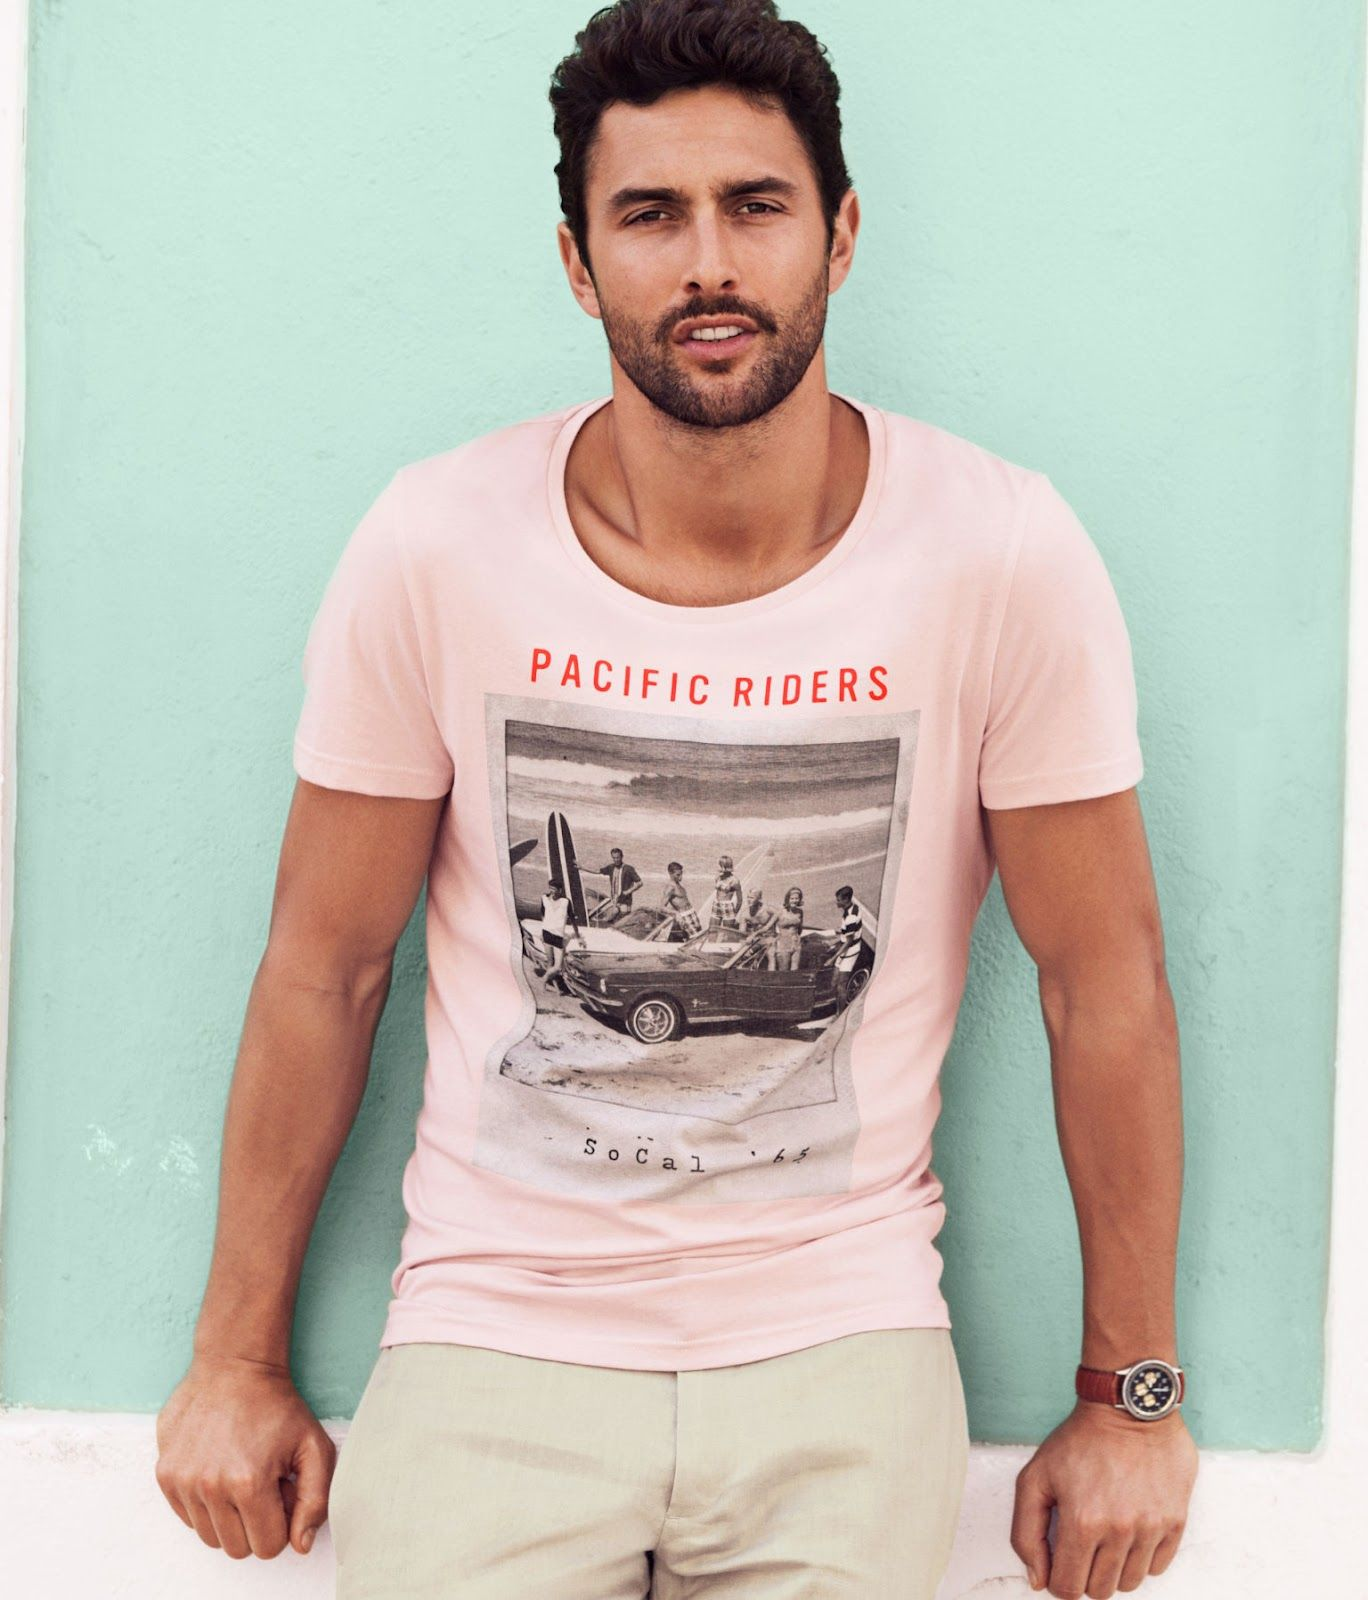 Noah Mills for H Shades of Summer campaign